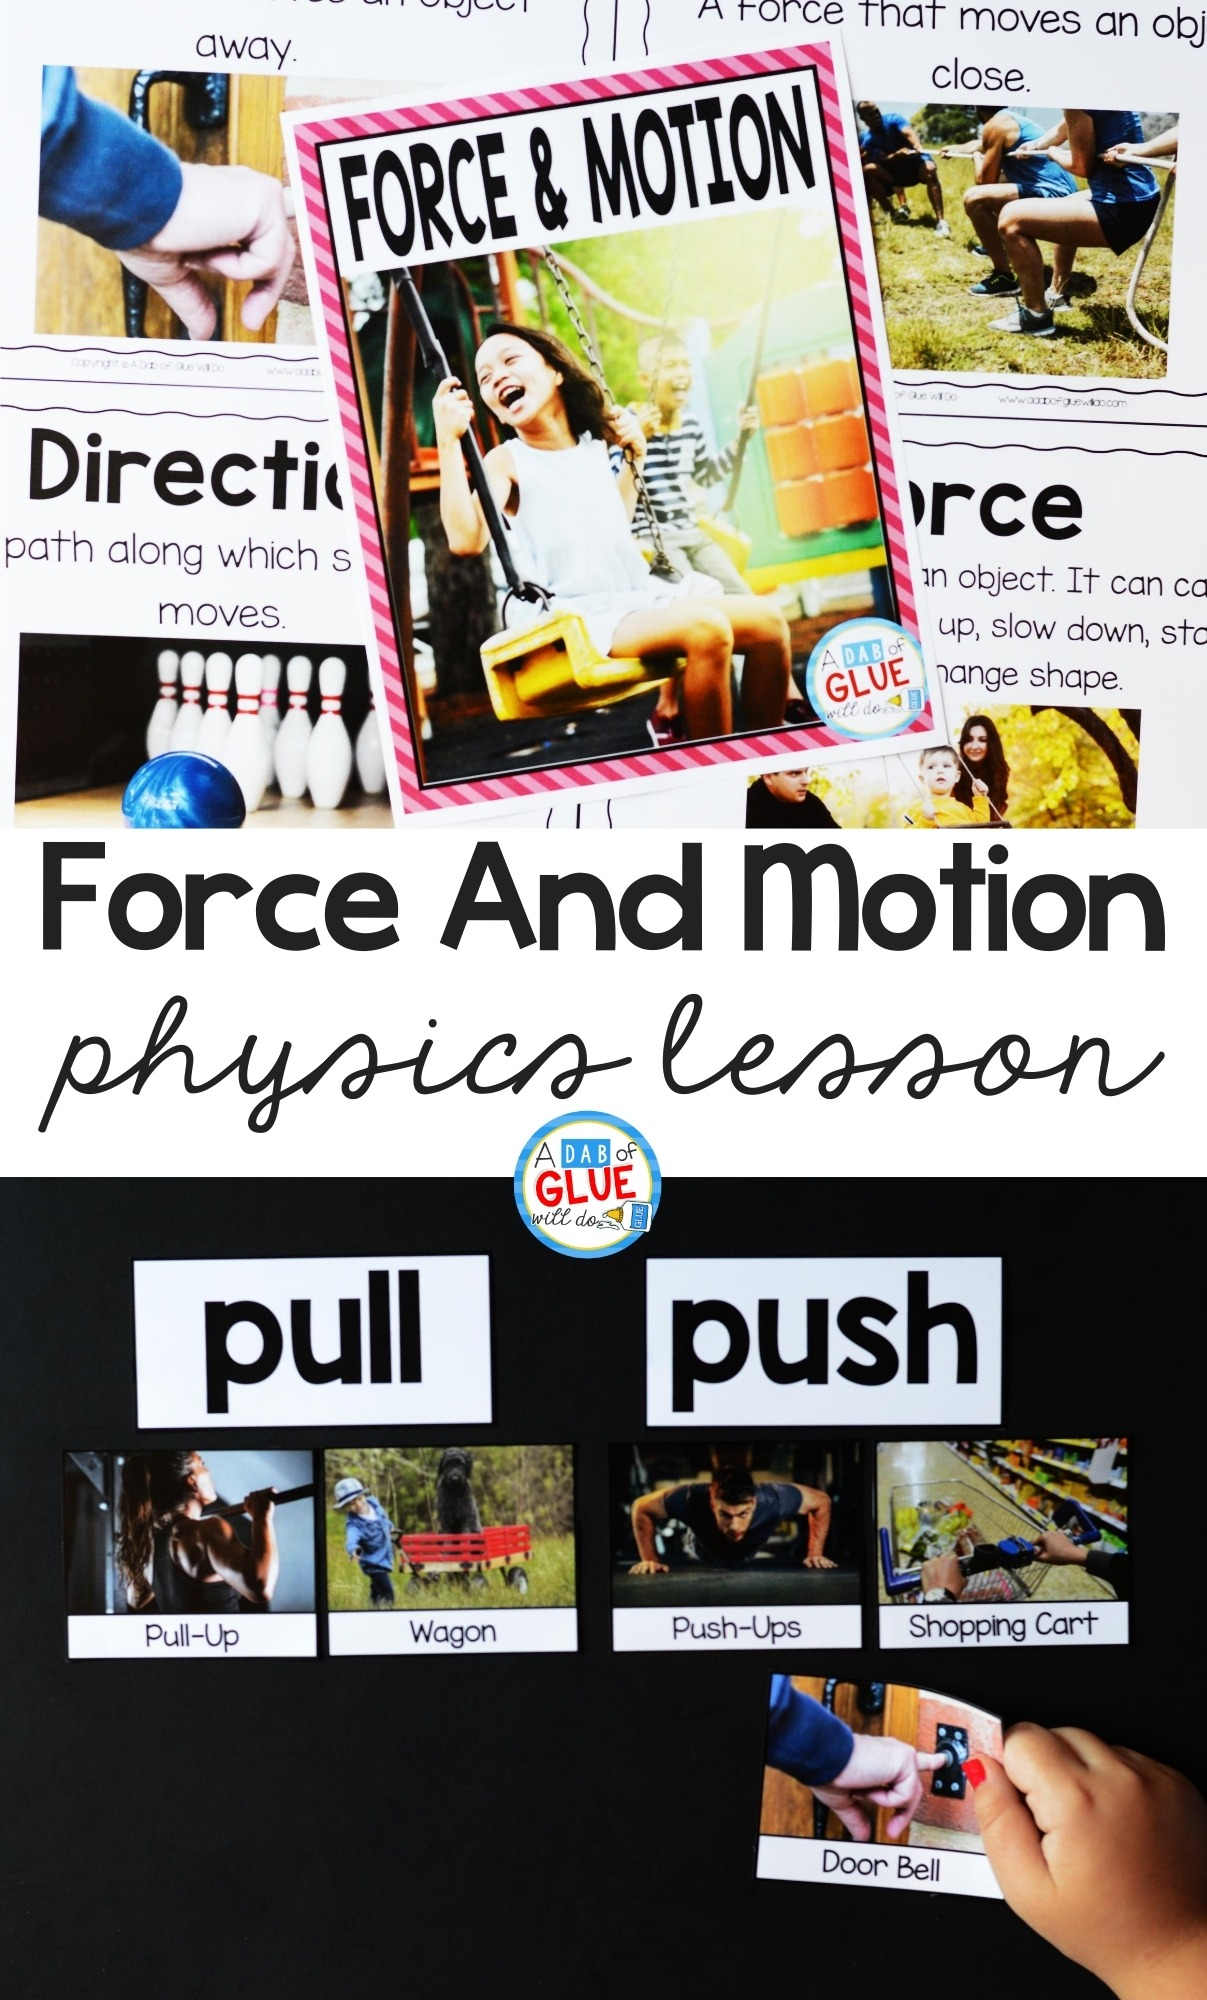 Force and Motion pinterest image with examples of what is included in the lesson and a child completing a hands-on activity about the concept of push and pull.